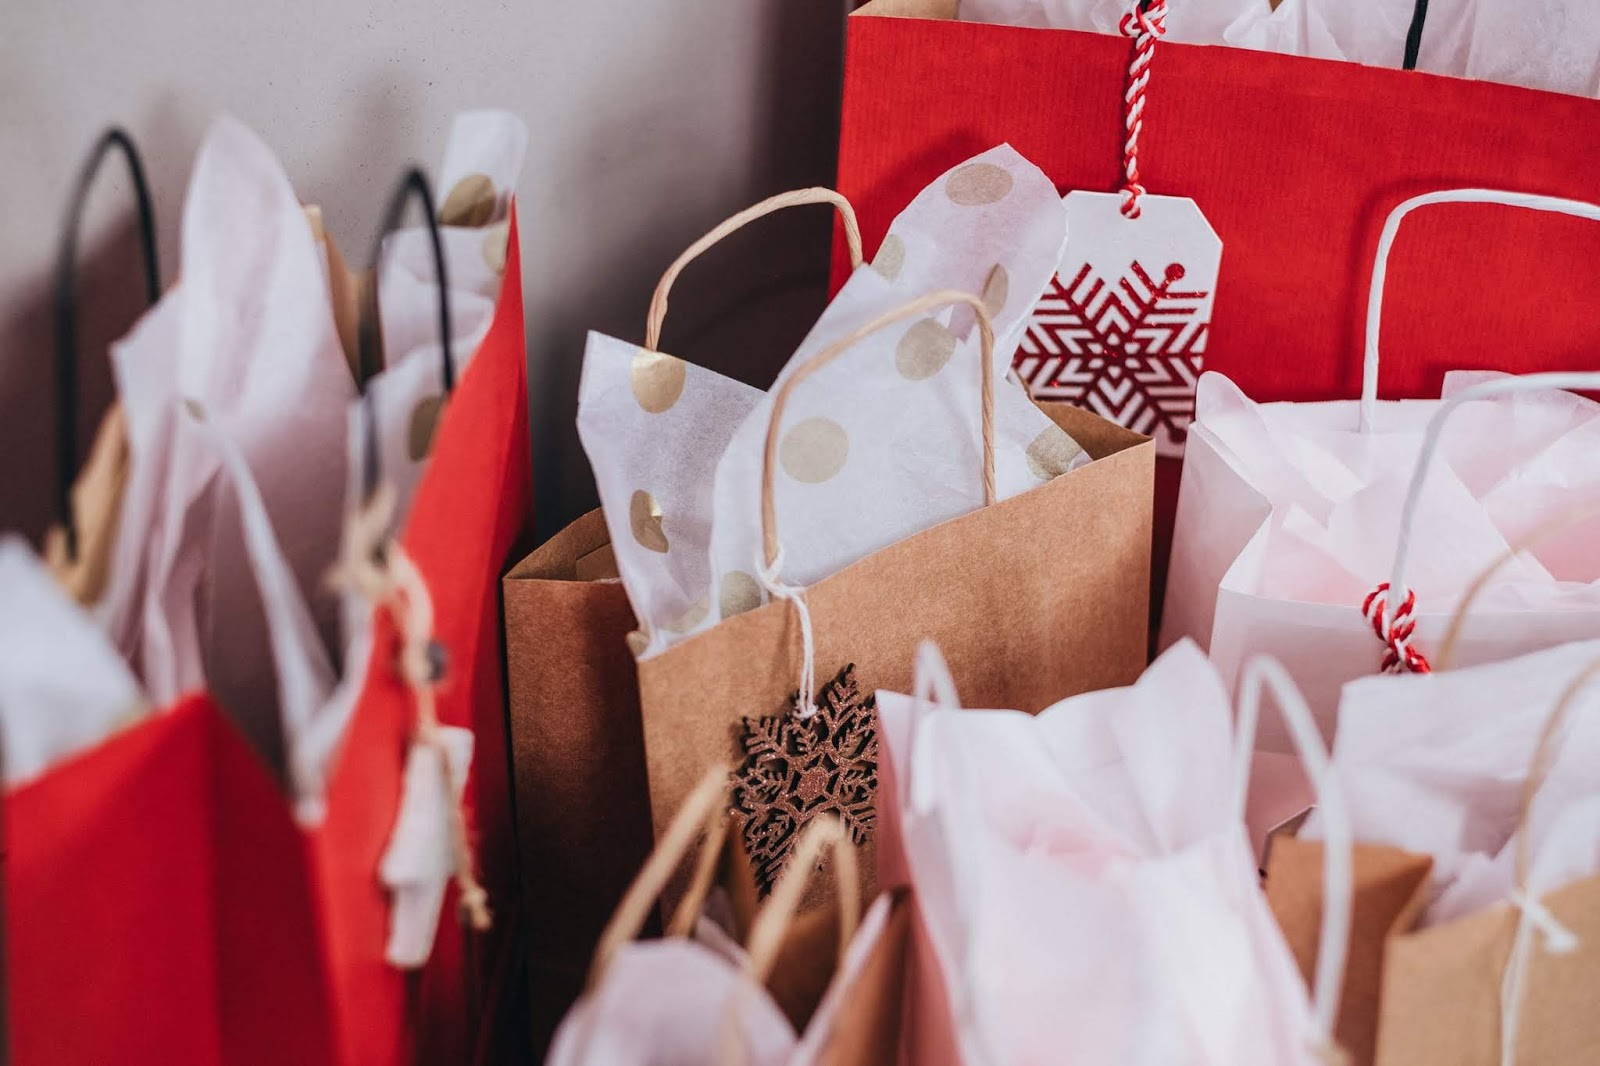 a group of festive shopping bags